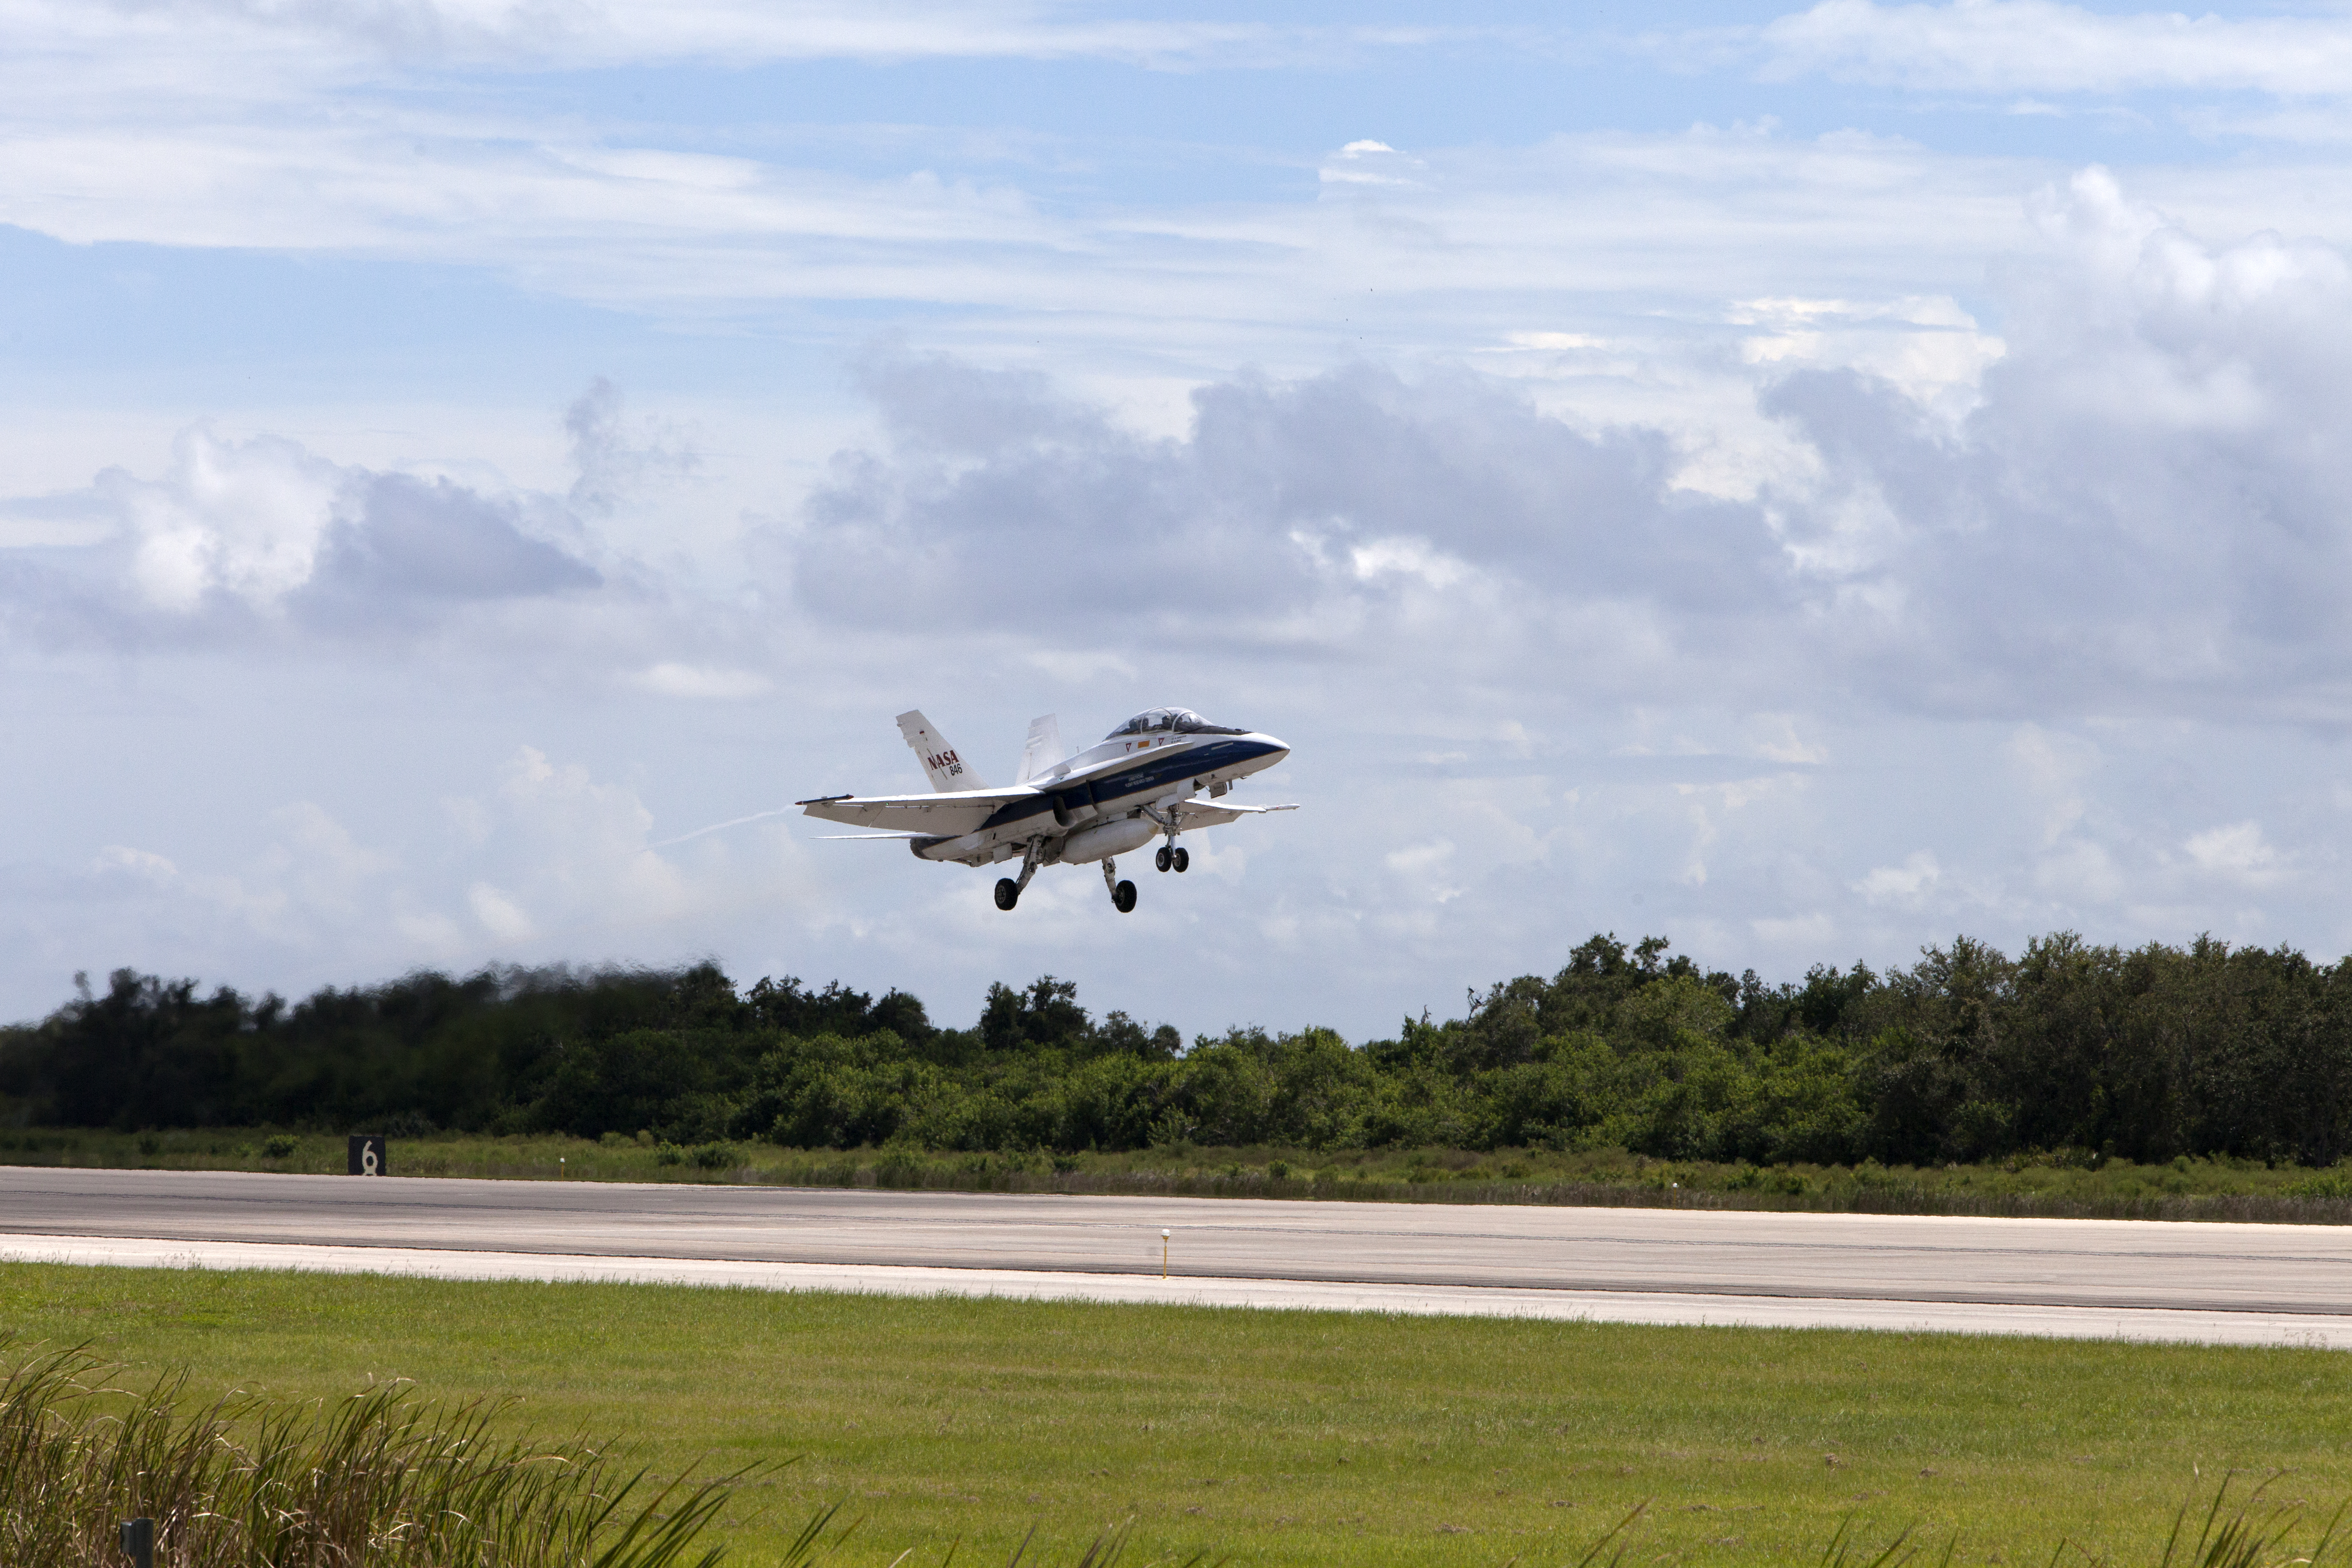 NASA Invites Media to Observe Quiet Supersonic Flight Series Operations